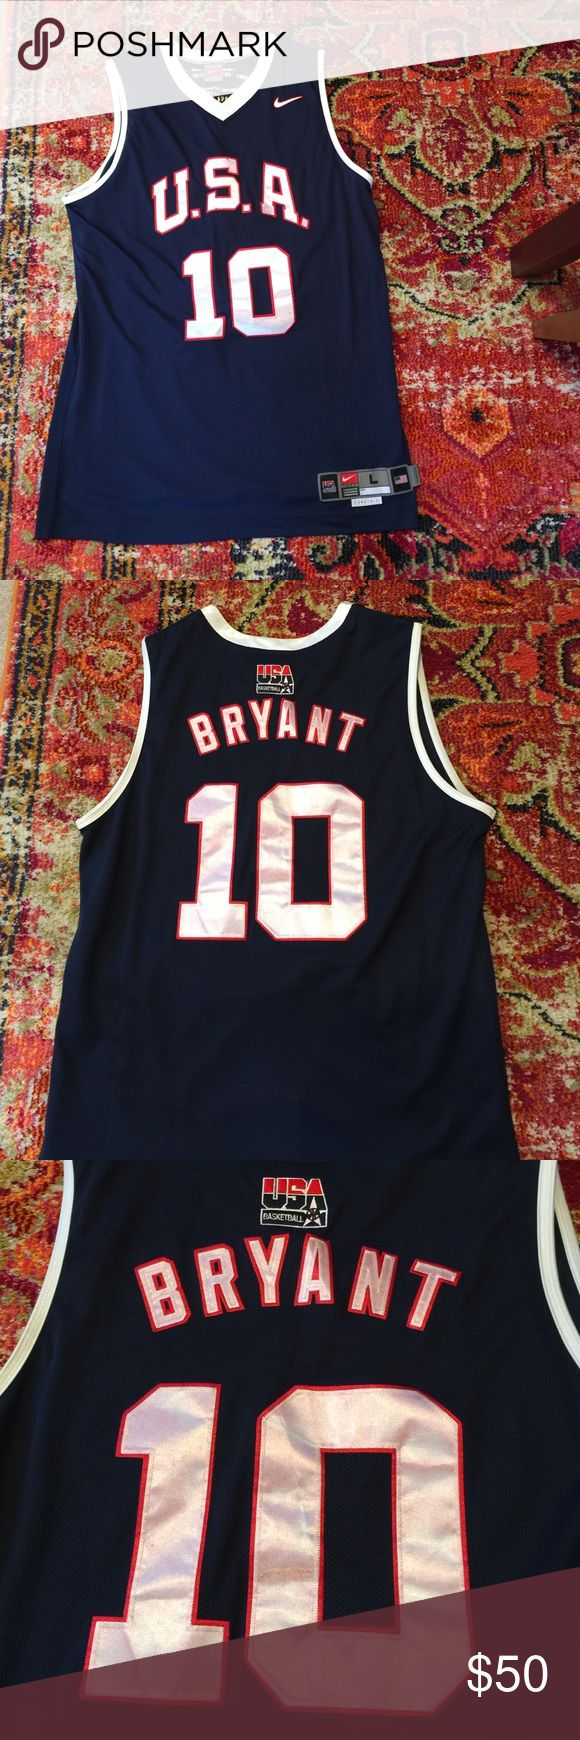 Mens large Nike Kobe Bryant Olympic jersey Mens large Nike Kobe Bryant USA Olympic jersey. All numbers, letters, and patches are stitched. This is the game model. Looks like the letters and numbers have slight bleeding from the red stitching. Please let me know if you have any questions. Thanks Nike Shirts Tank Tops